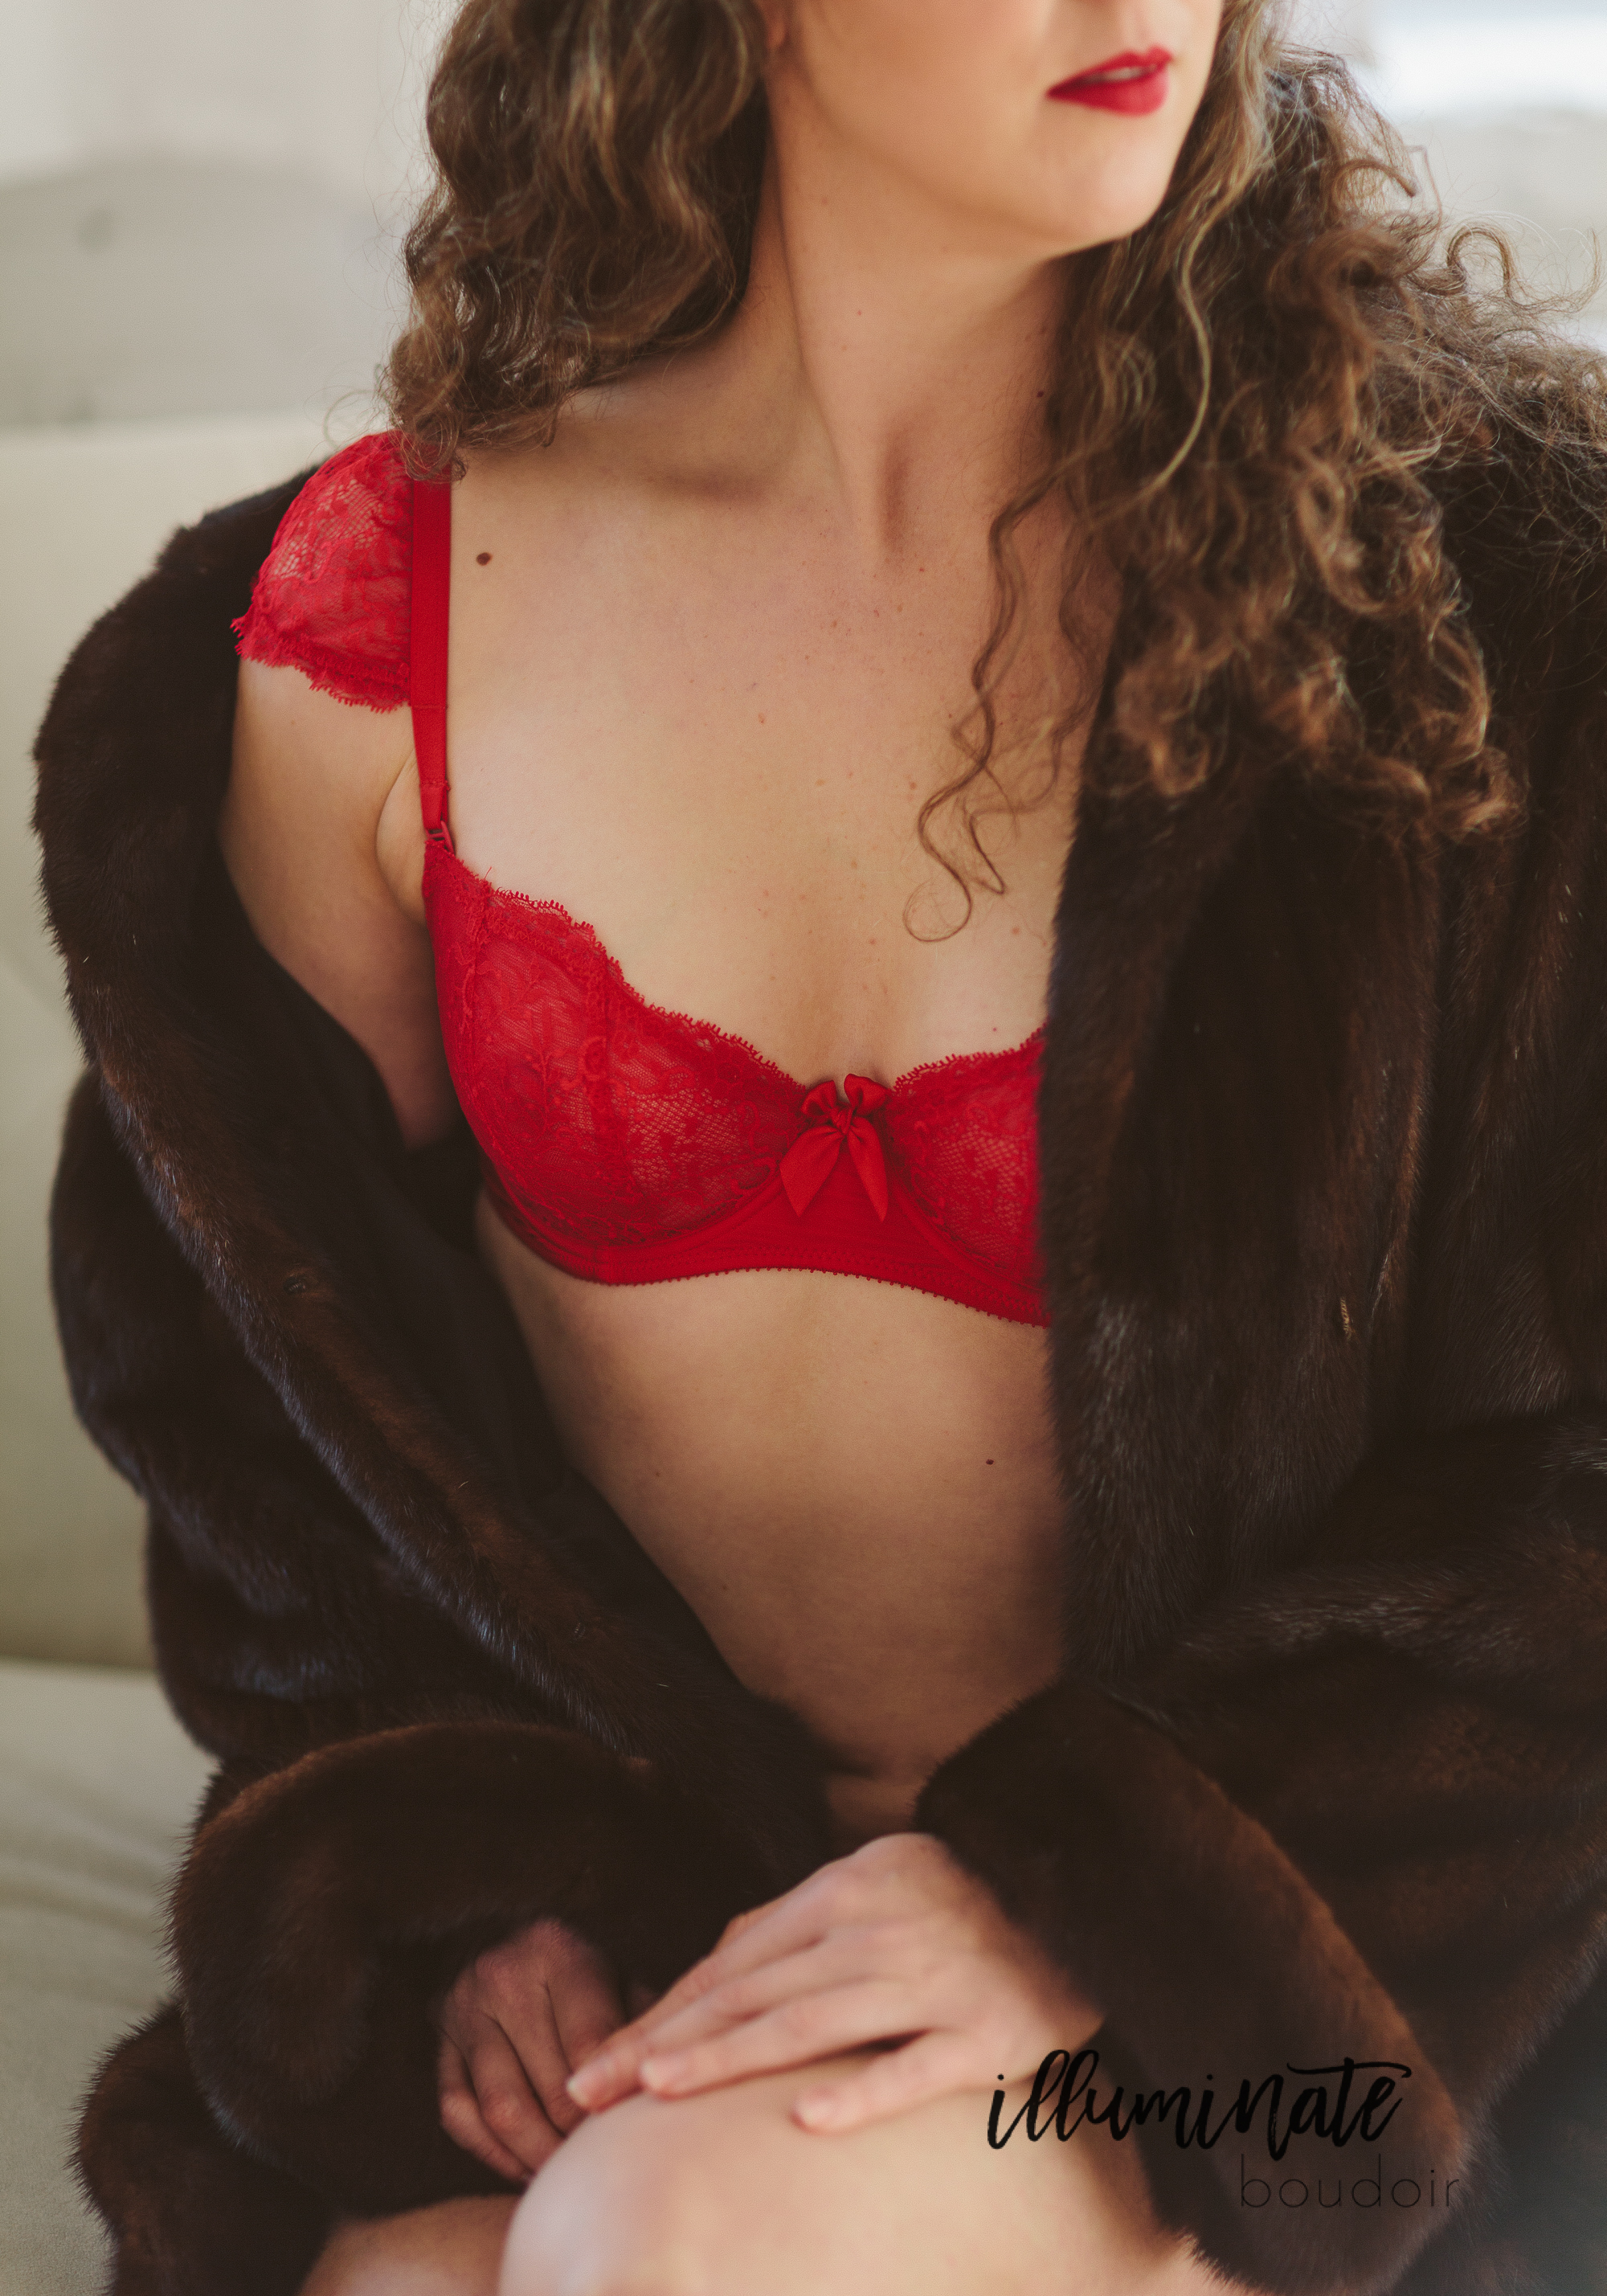 Vintage Twin Cities Boudoir Portraits-5.jpg